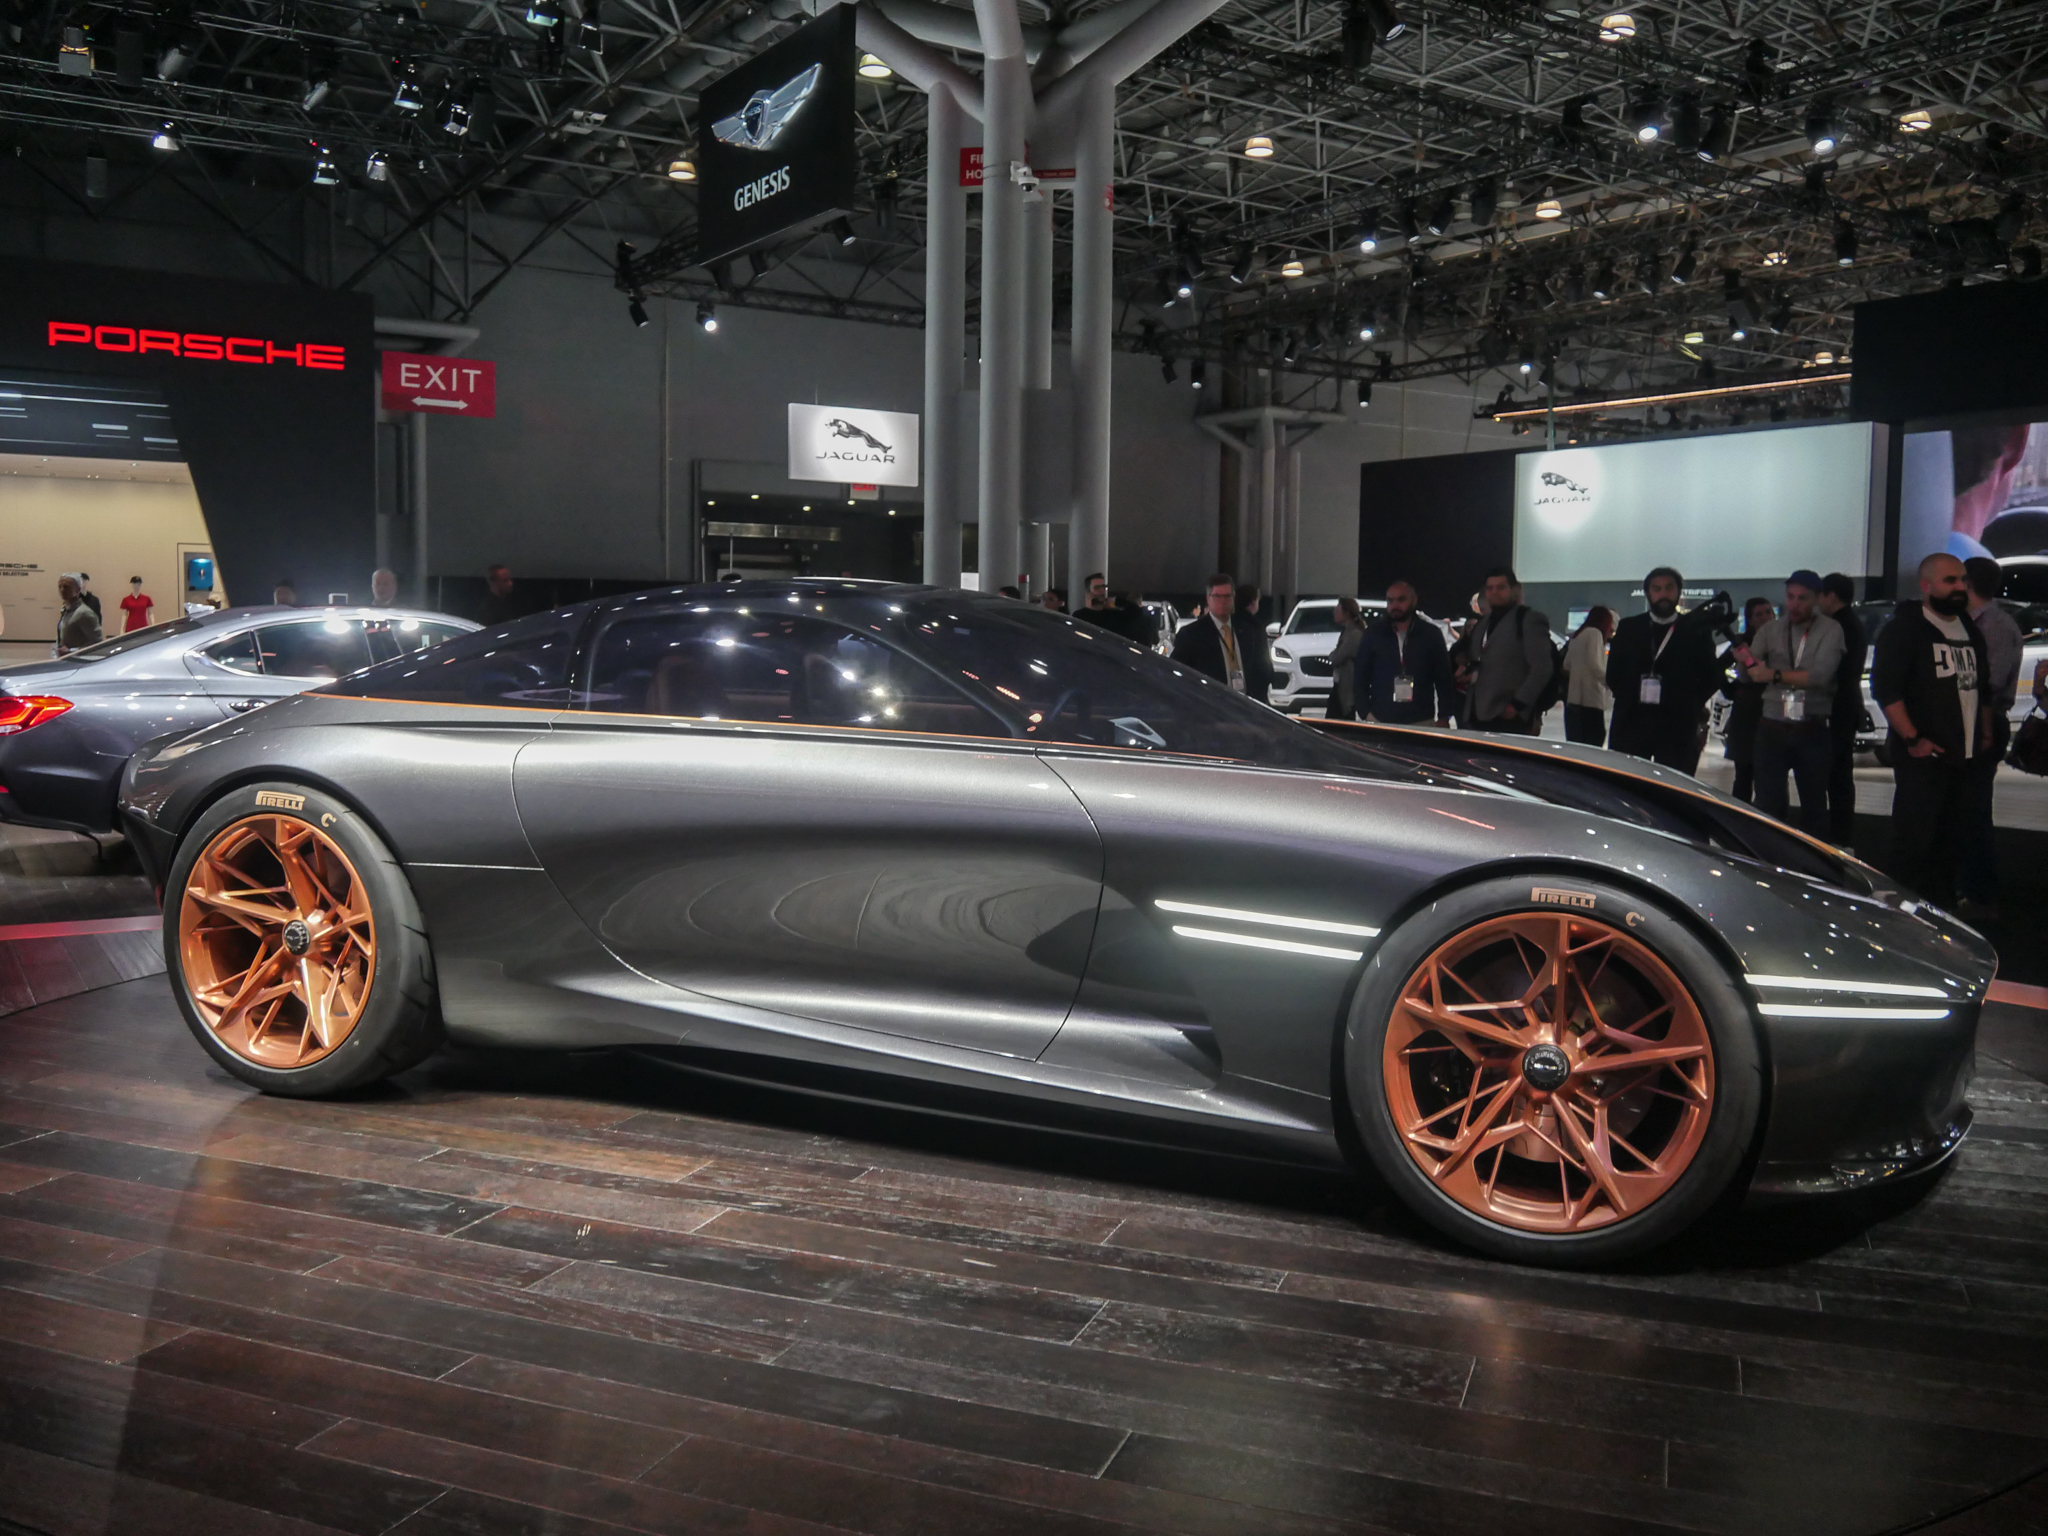 Jawdropping Genesis Essentia Stole The Show In NYand It May Never - Concept car show